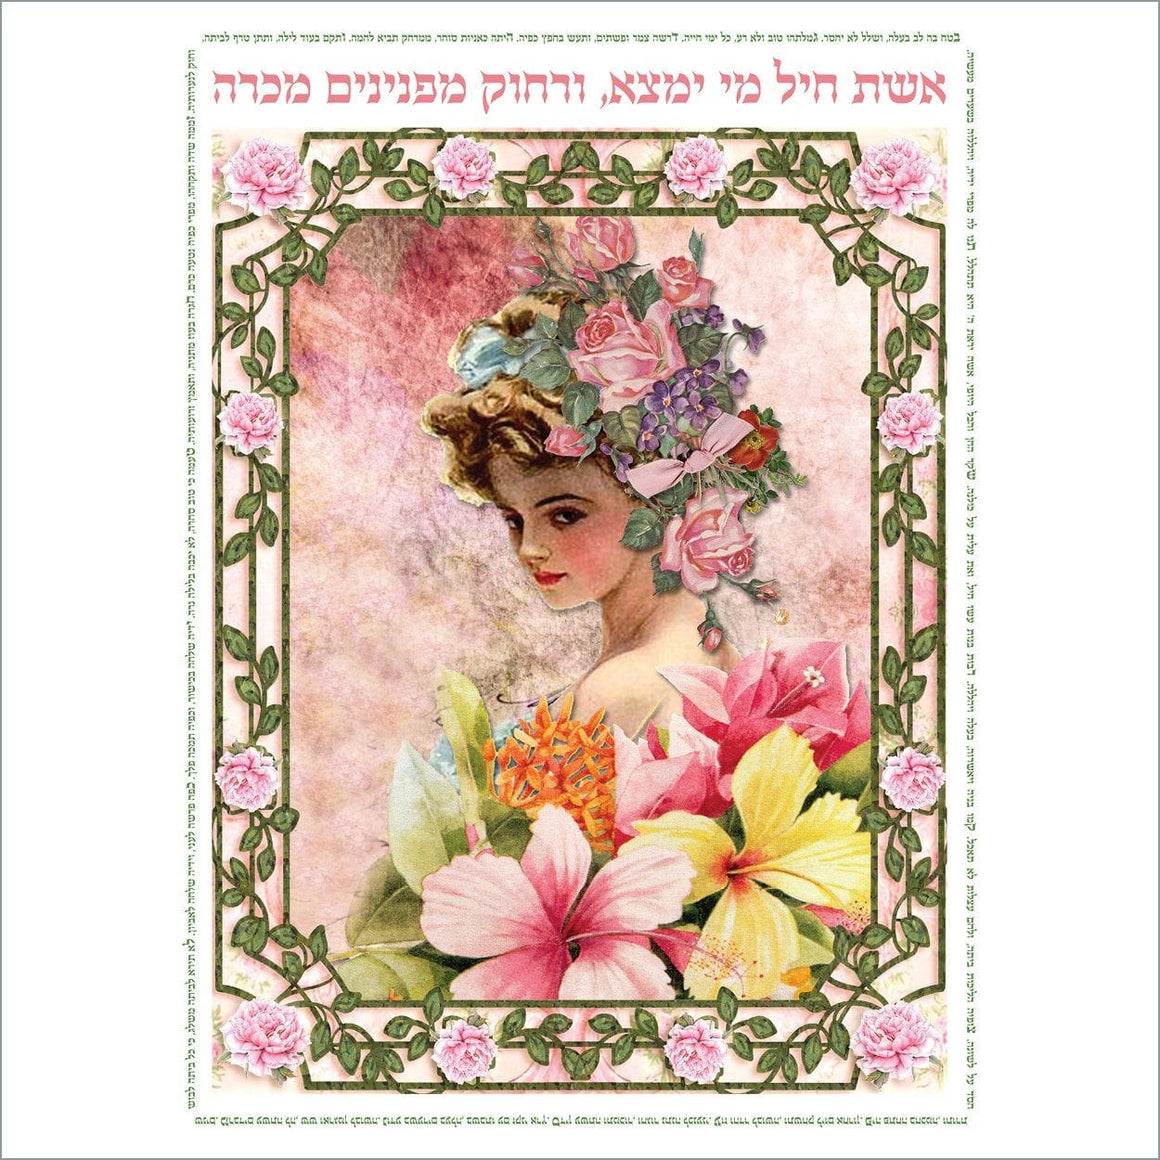 Woman of Valor / אשת חיל Artistic Gifts|Artistic Gifts > Woman of Valor / אשת חיל